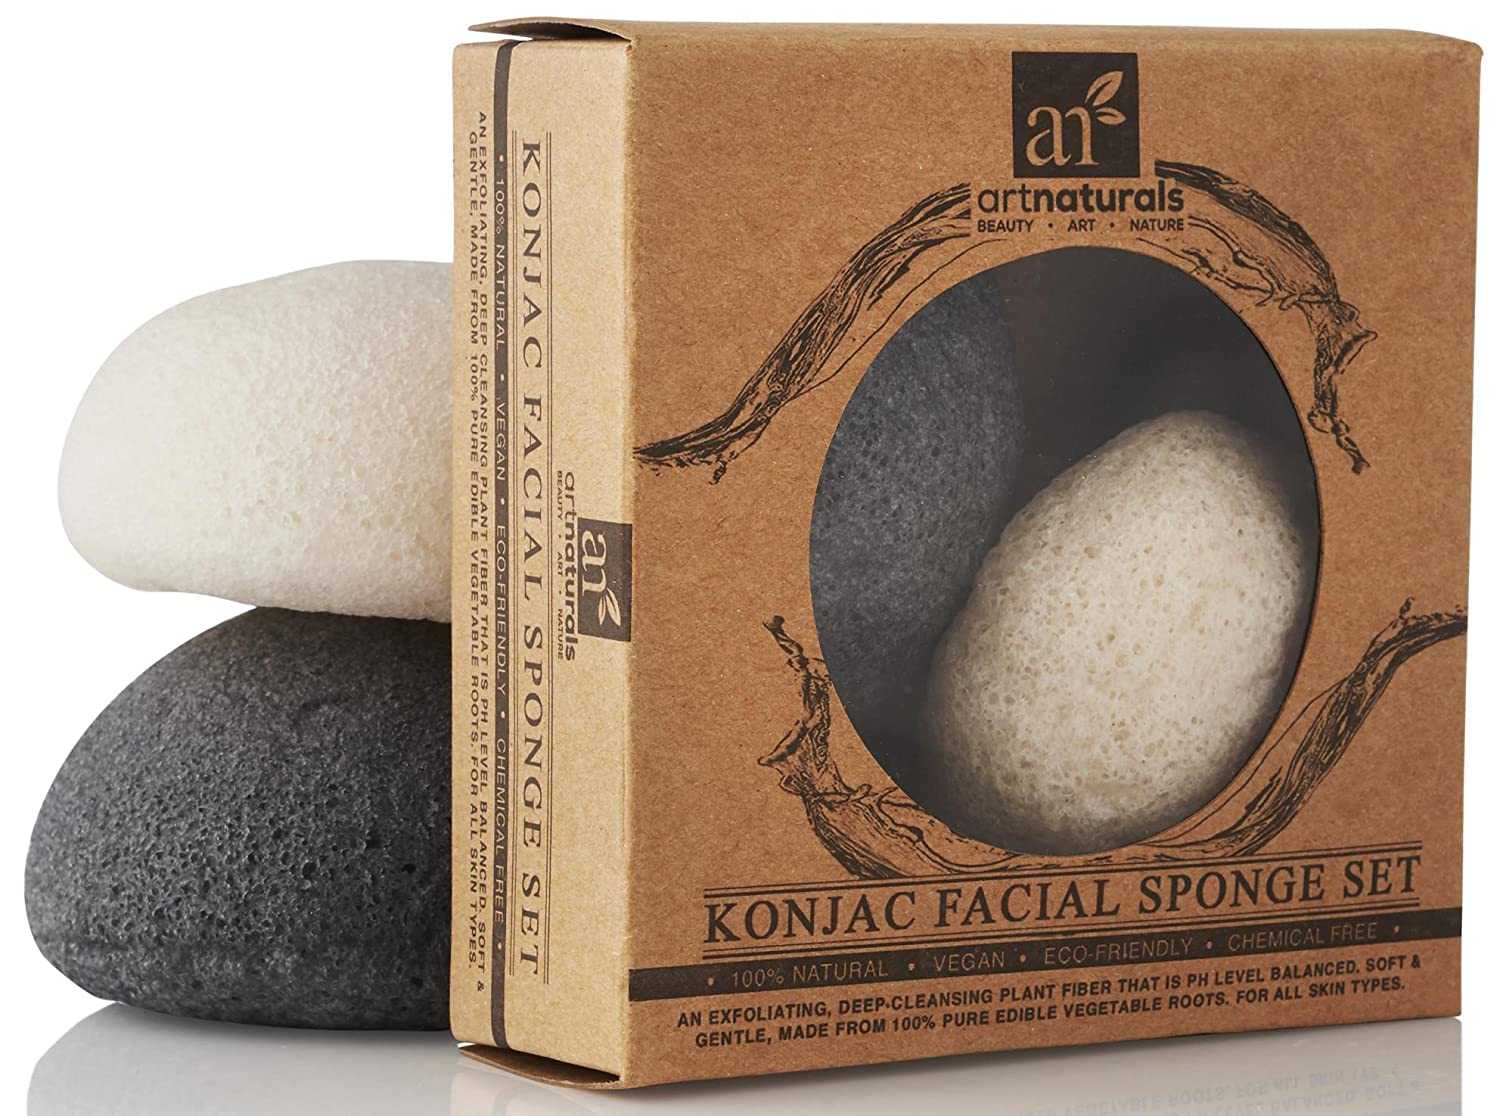 ArtNaturals Konjac Facial Sponge Set - 2 Pack (Charcoal Black and Natural White) - Natural Great for Sensitive, Oily and Acne Prone Skin - Beauty Facial Scrub for gentle deep cleaning and exfoliation Art Naturals ANTA-5008-VE